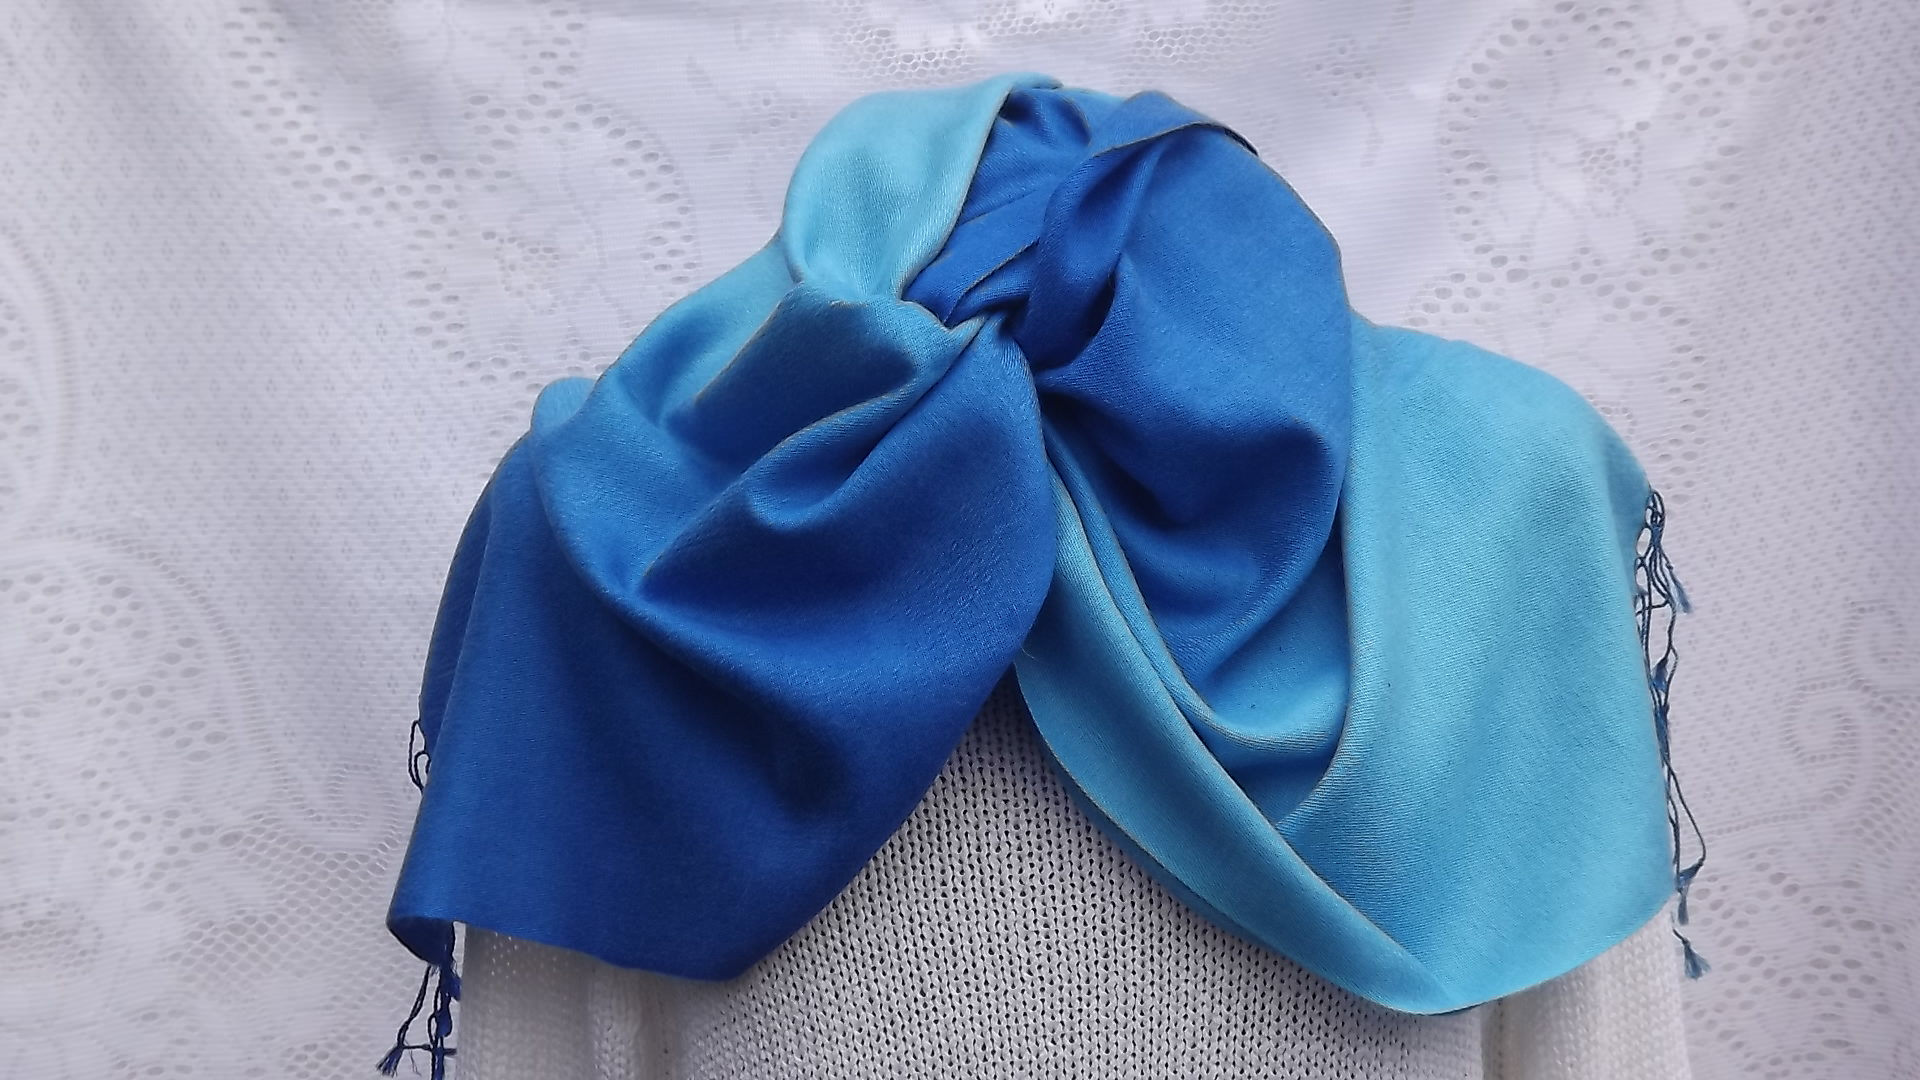 Blue cashmere wedding pashmina scarves, Blue cashmere pashmina scarves, Blue cashmere pashmina wraps, Blue cashmere pashmina stoles, Blue cashmere pashmina shawls, perfect Blue cashmere pashmina, blue pashmina scarves, pashmina wraps, pashmina stoles, pashmina shawls, perfect pashmina